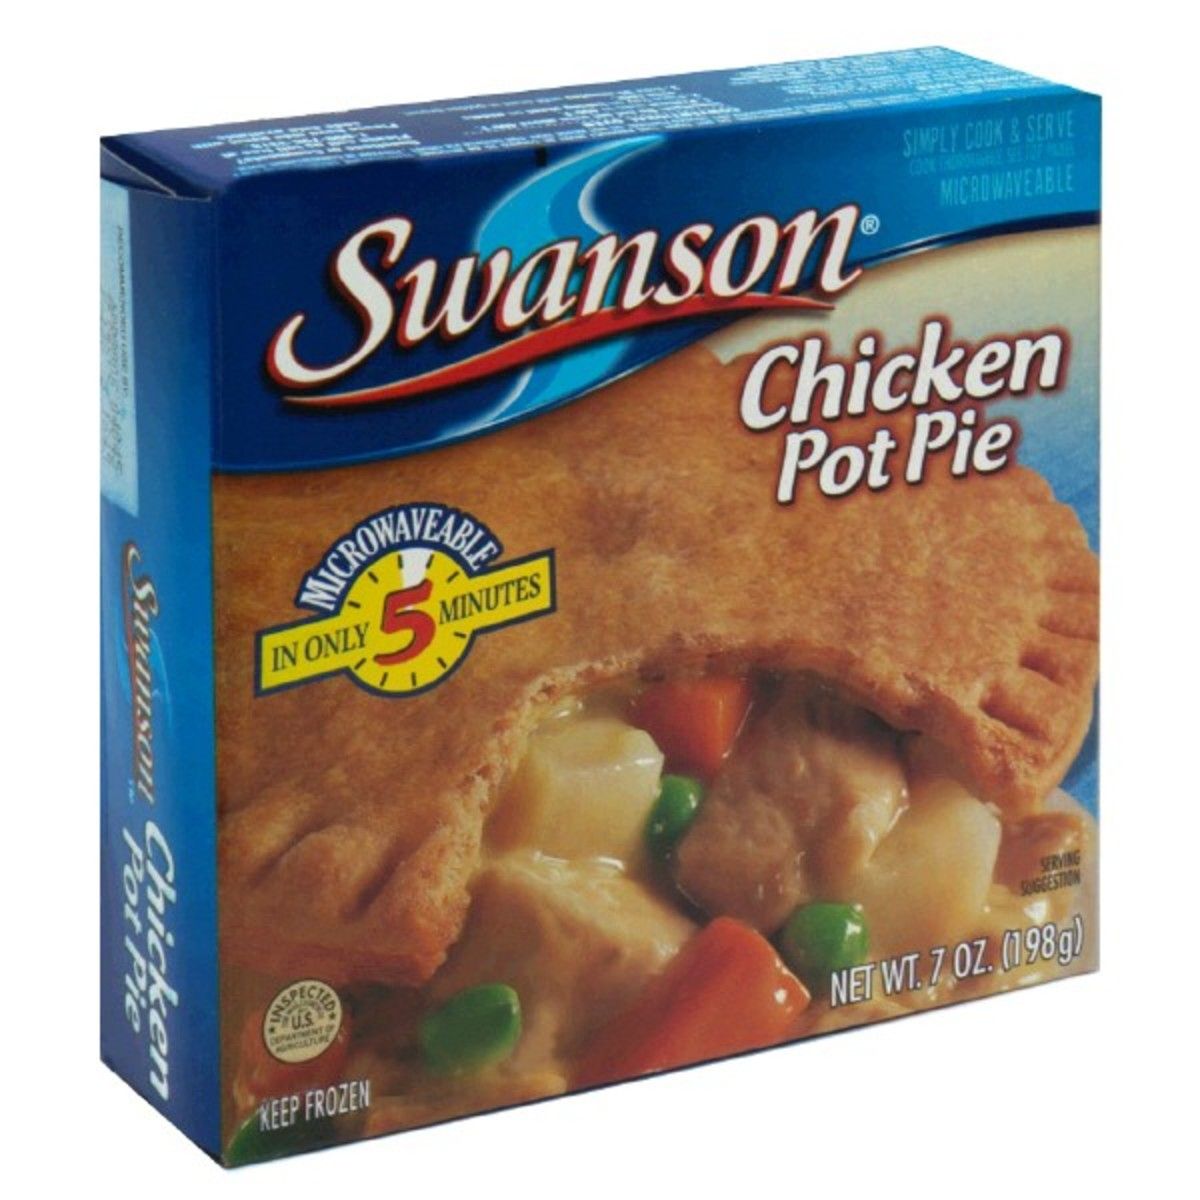 In 1951, Swanson introduced beef, chicken, and turkey pot pies.